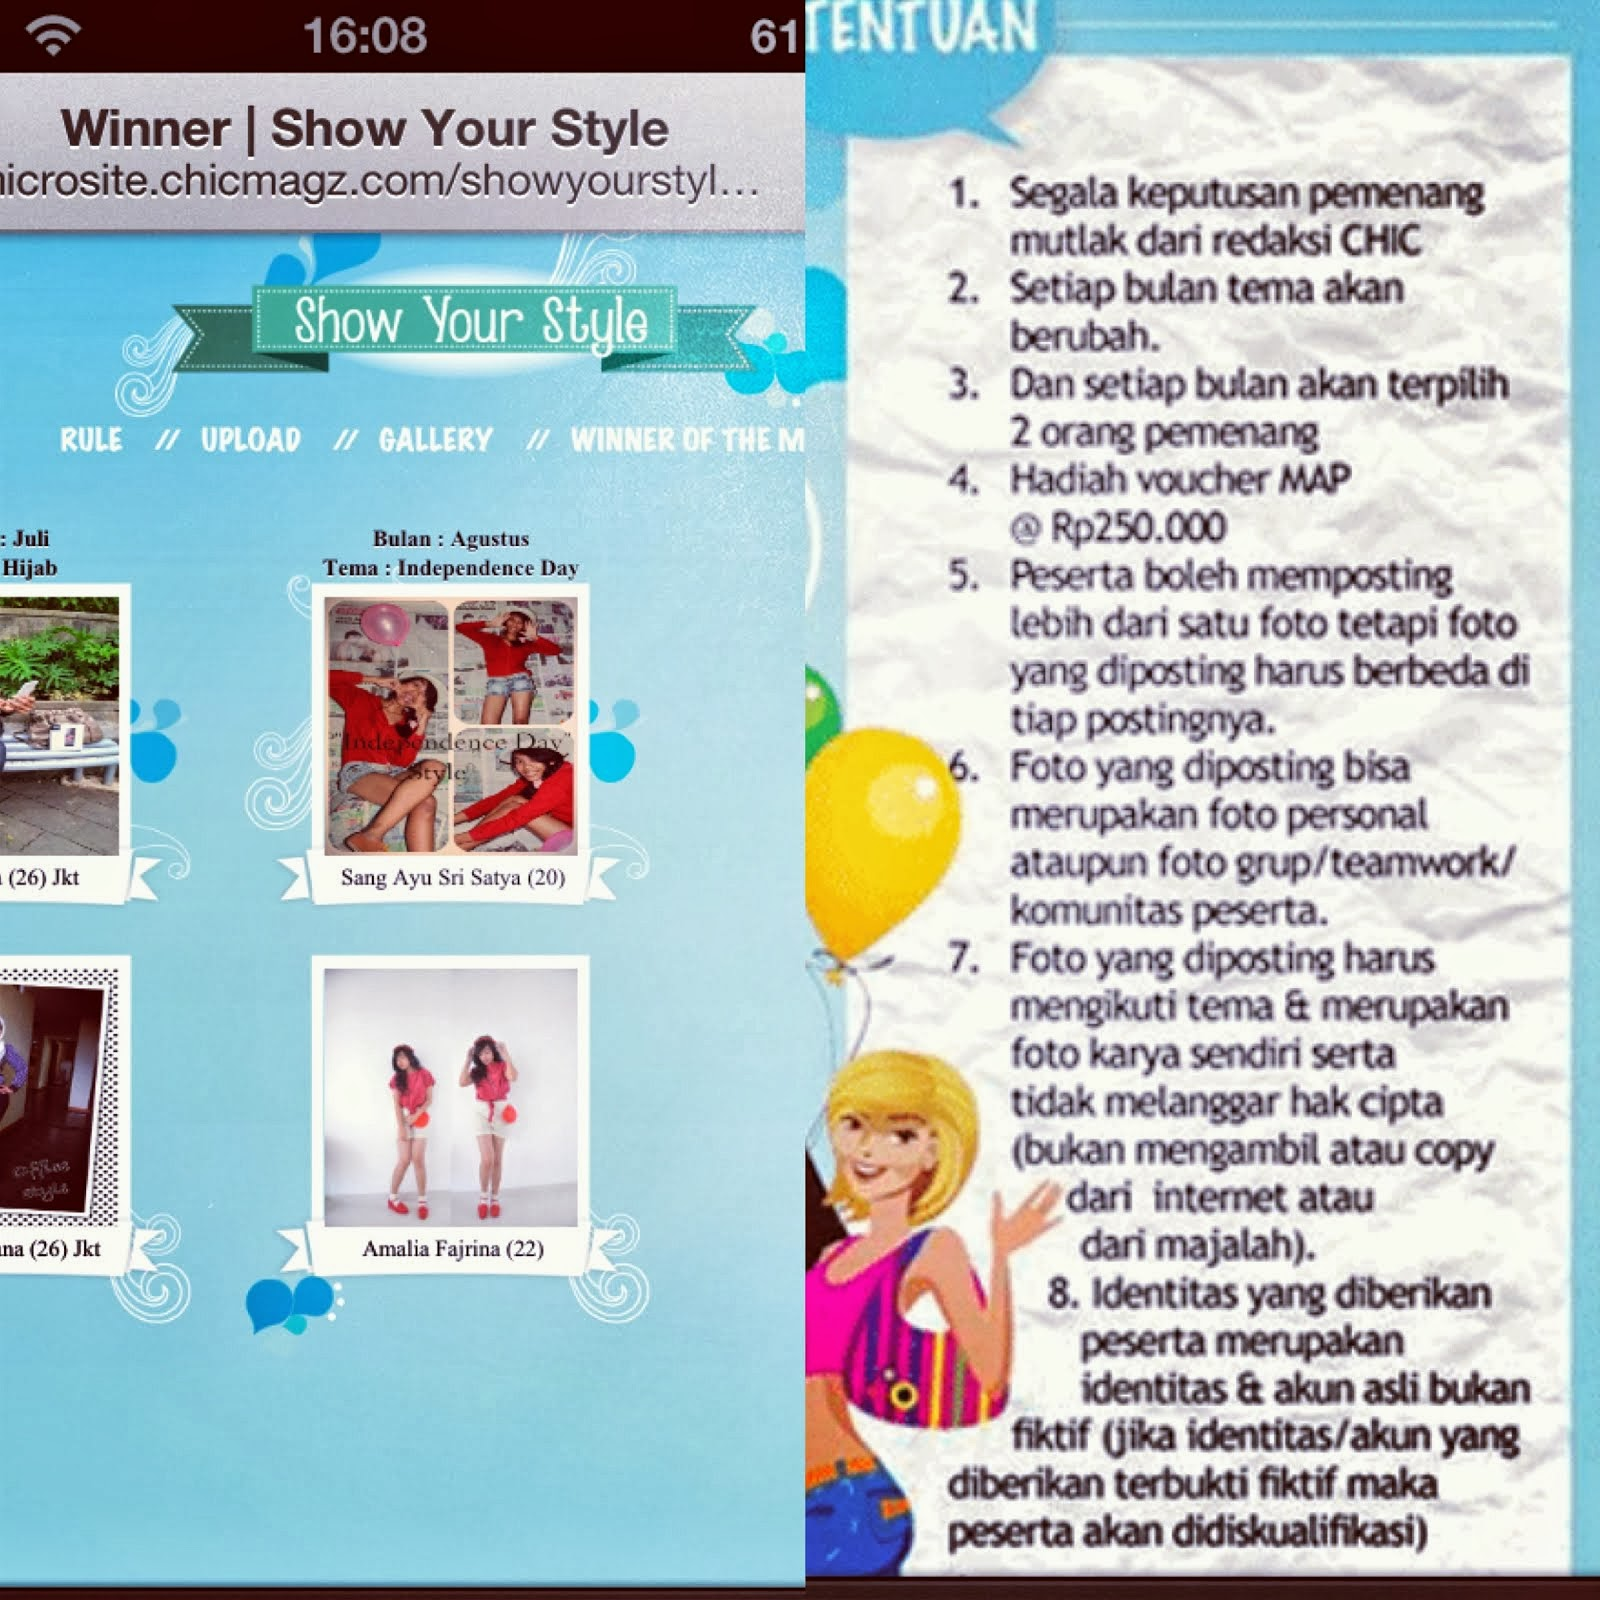 The Winner of Show Your Style by CHIC Magazine